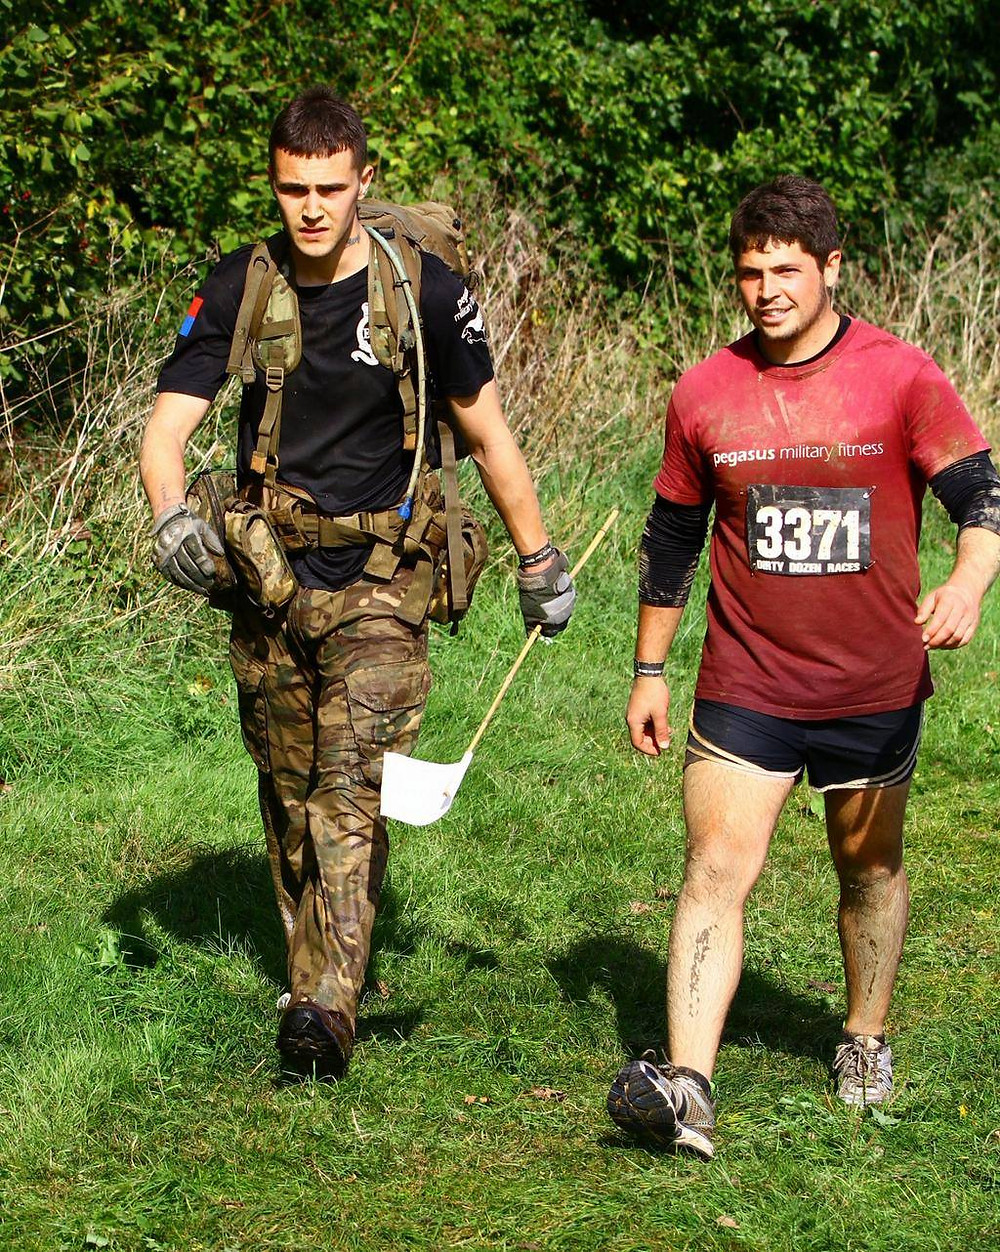 Pegasus Military Fitness Jay and Dave Dirty Dozen.jpg